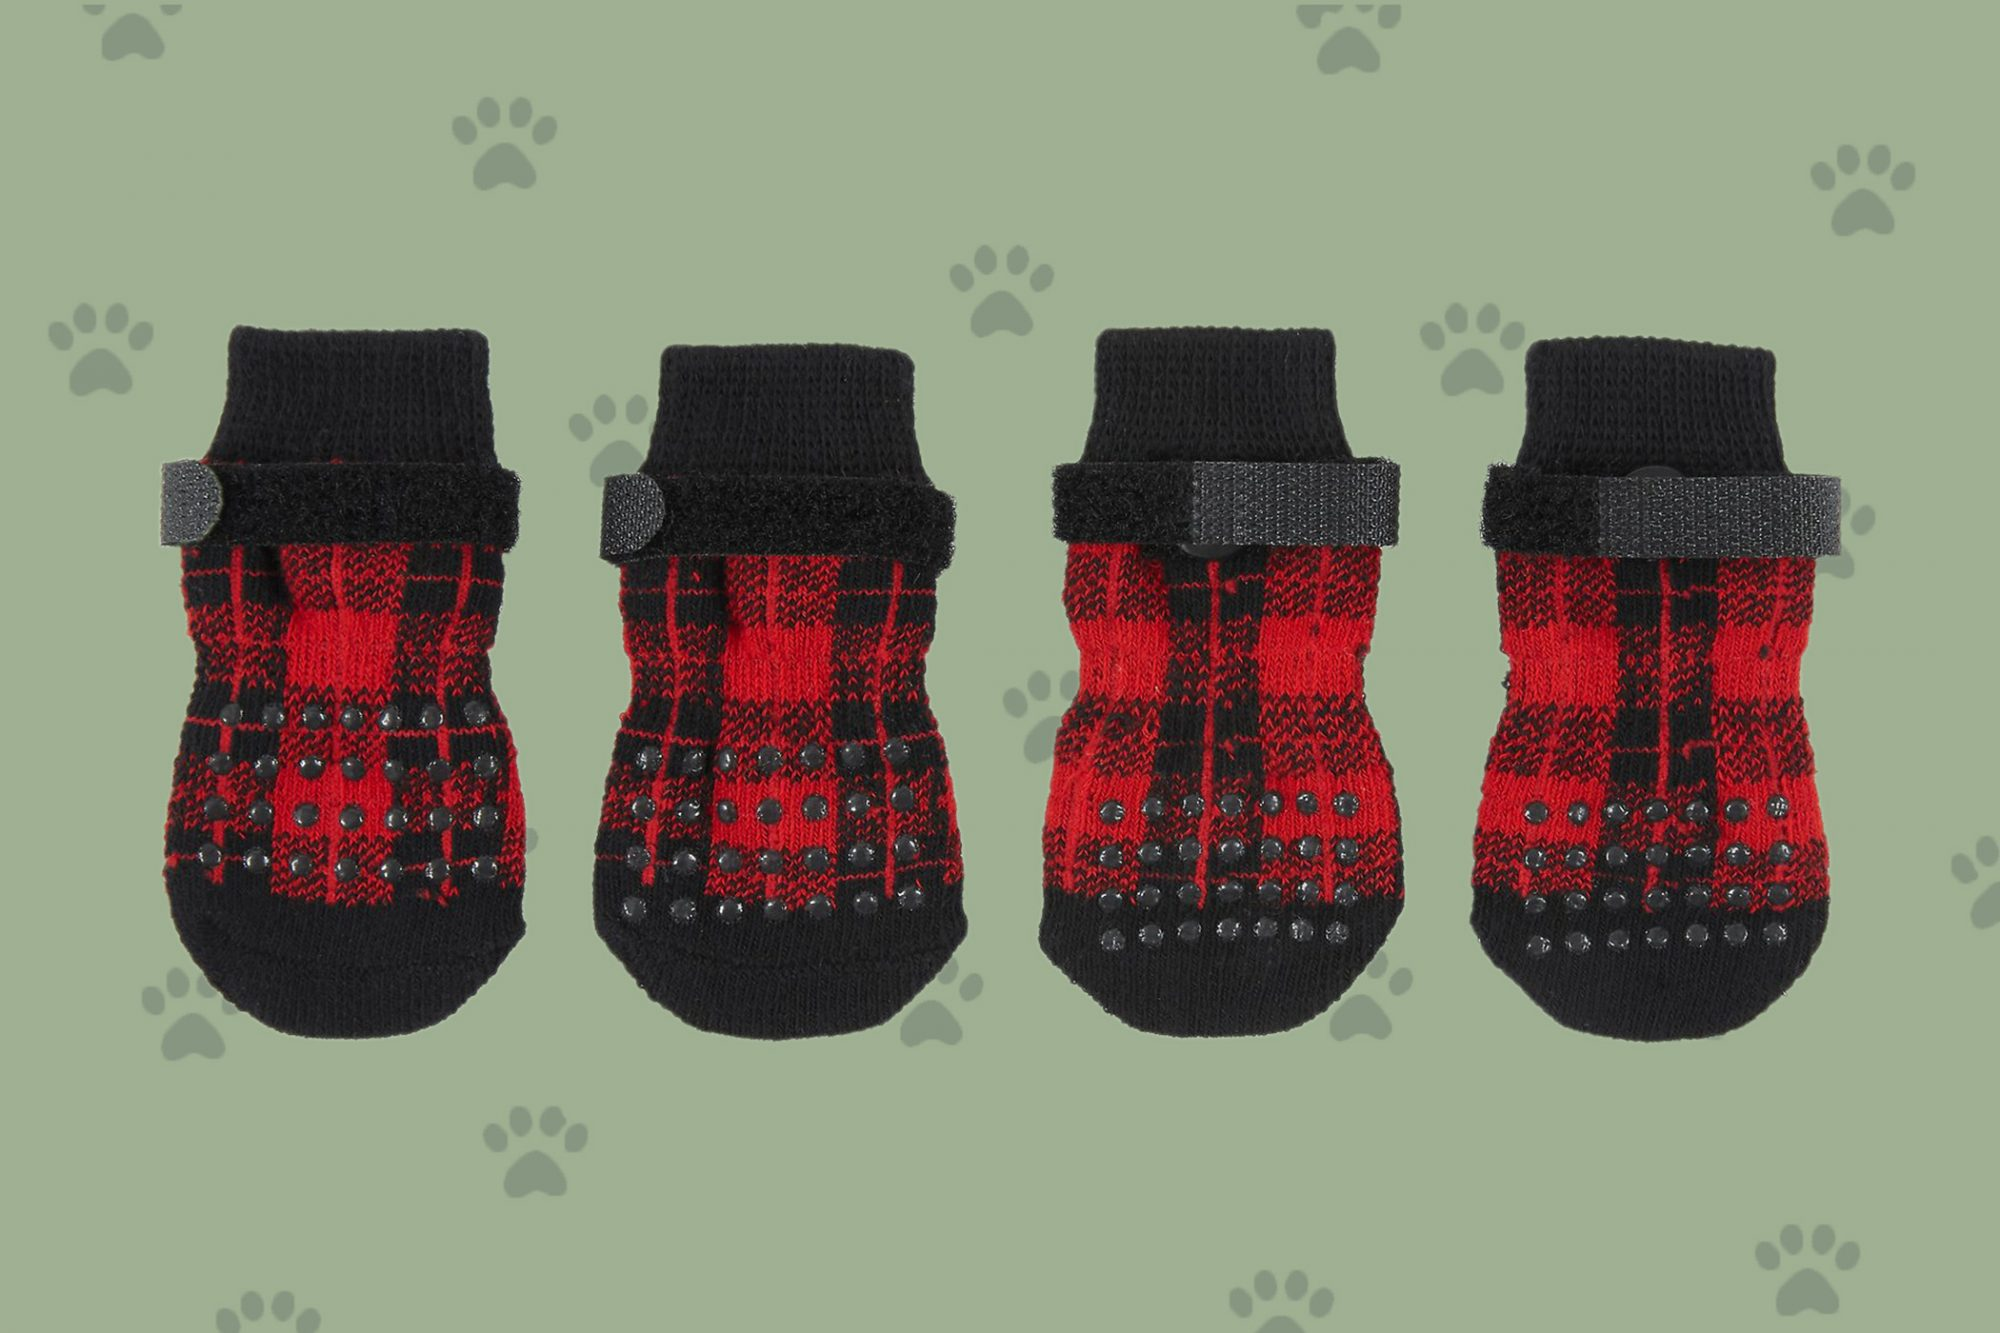 Illustration of four dog socks